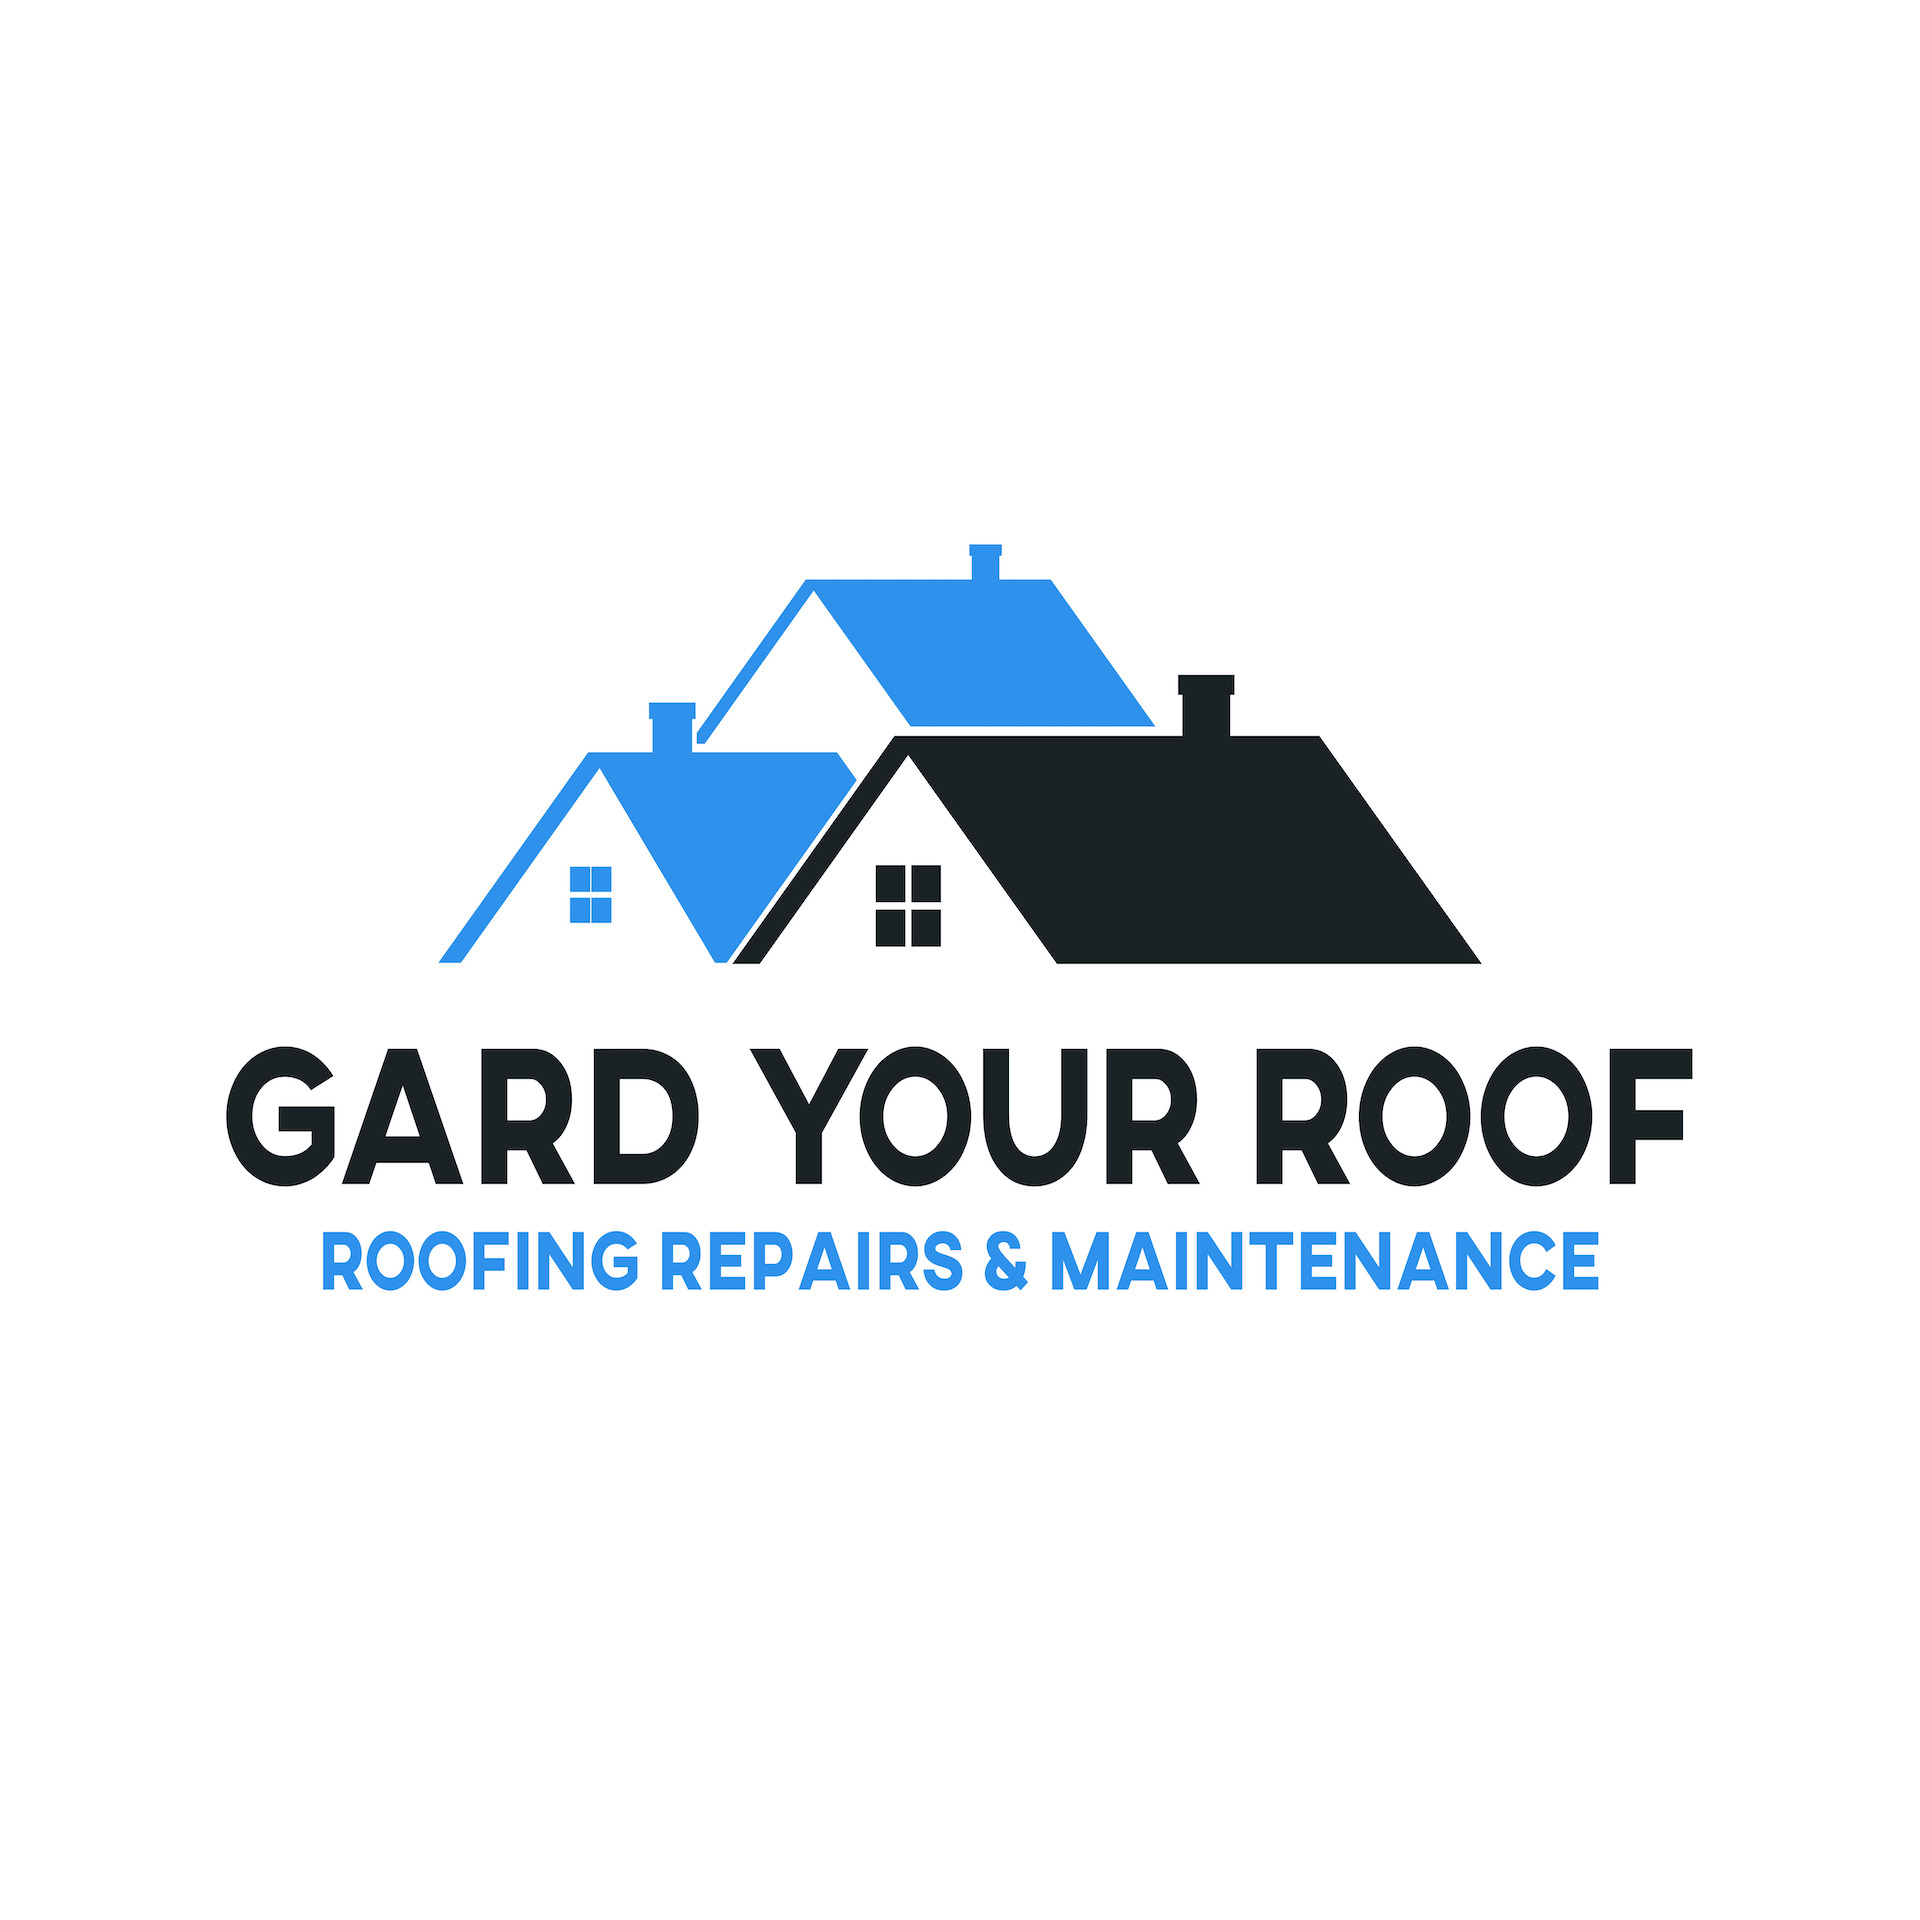 Gard Your Roof